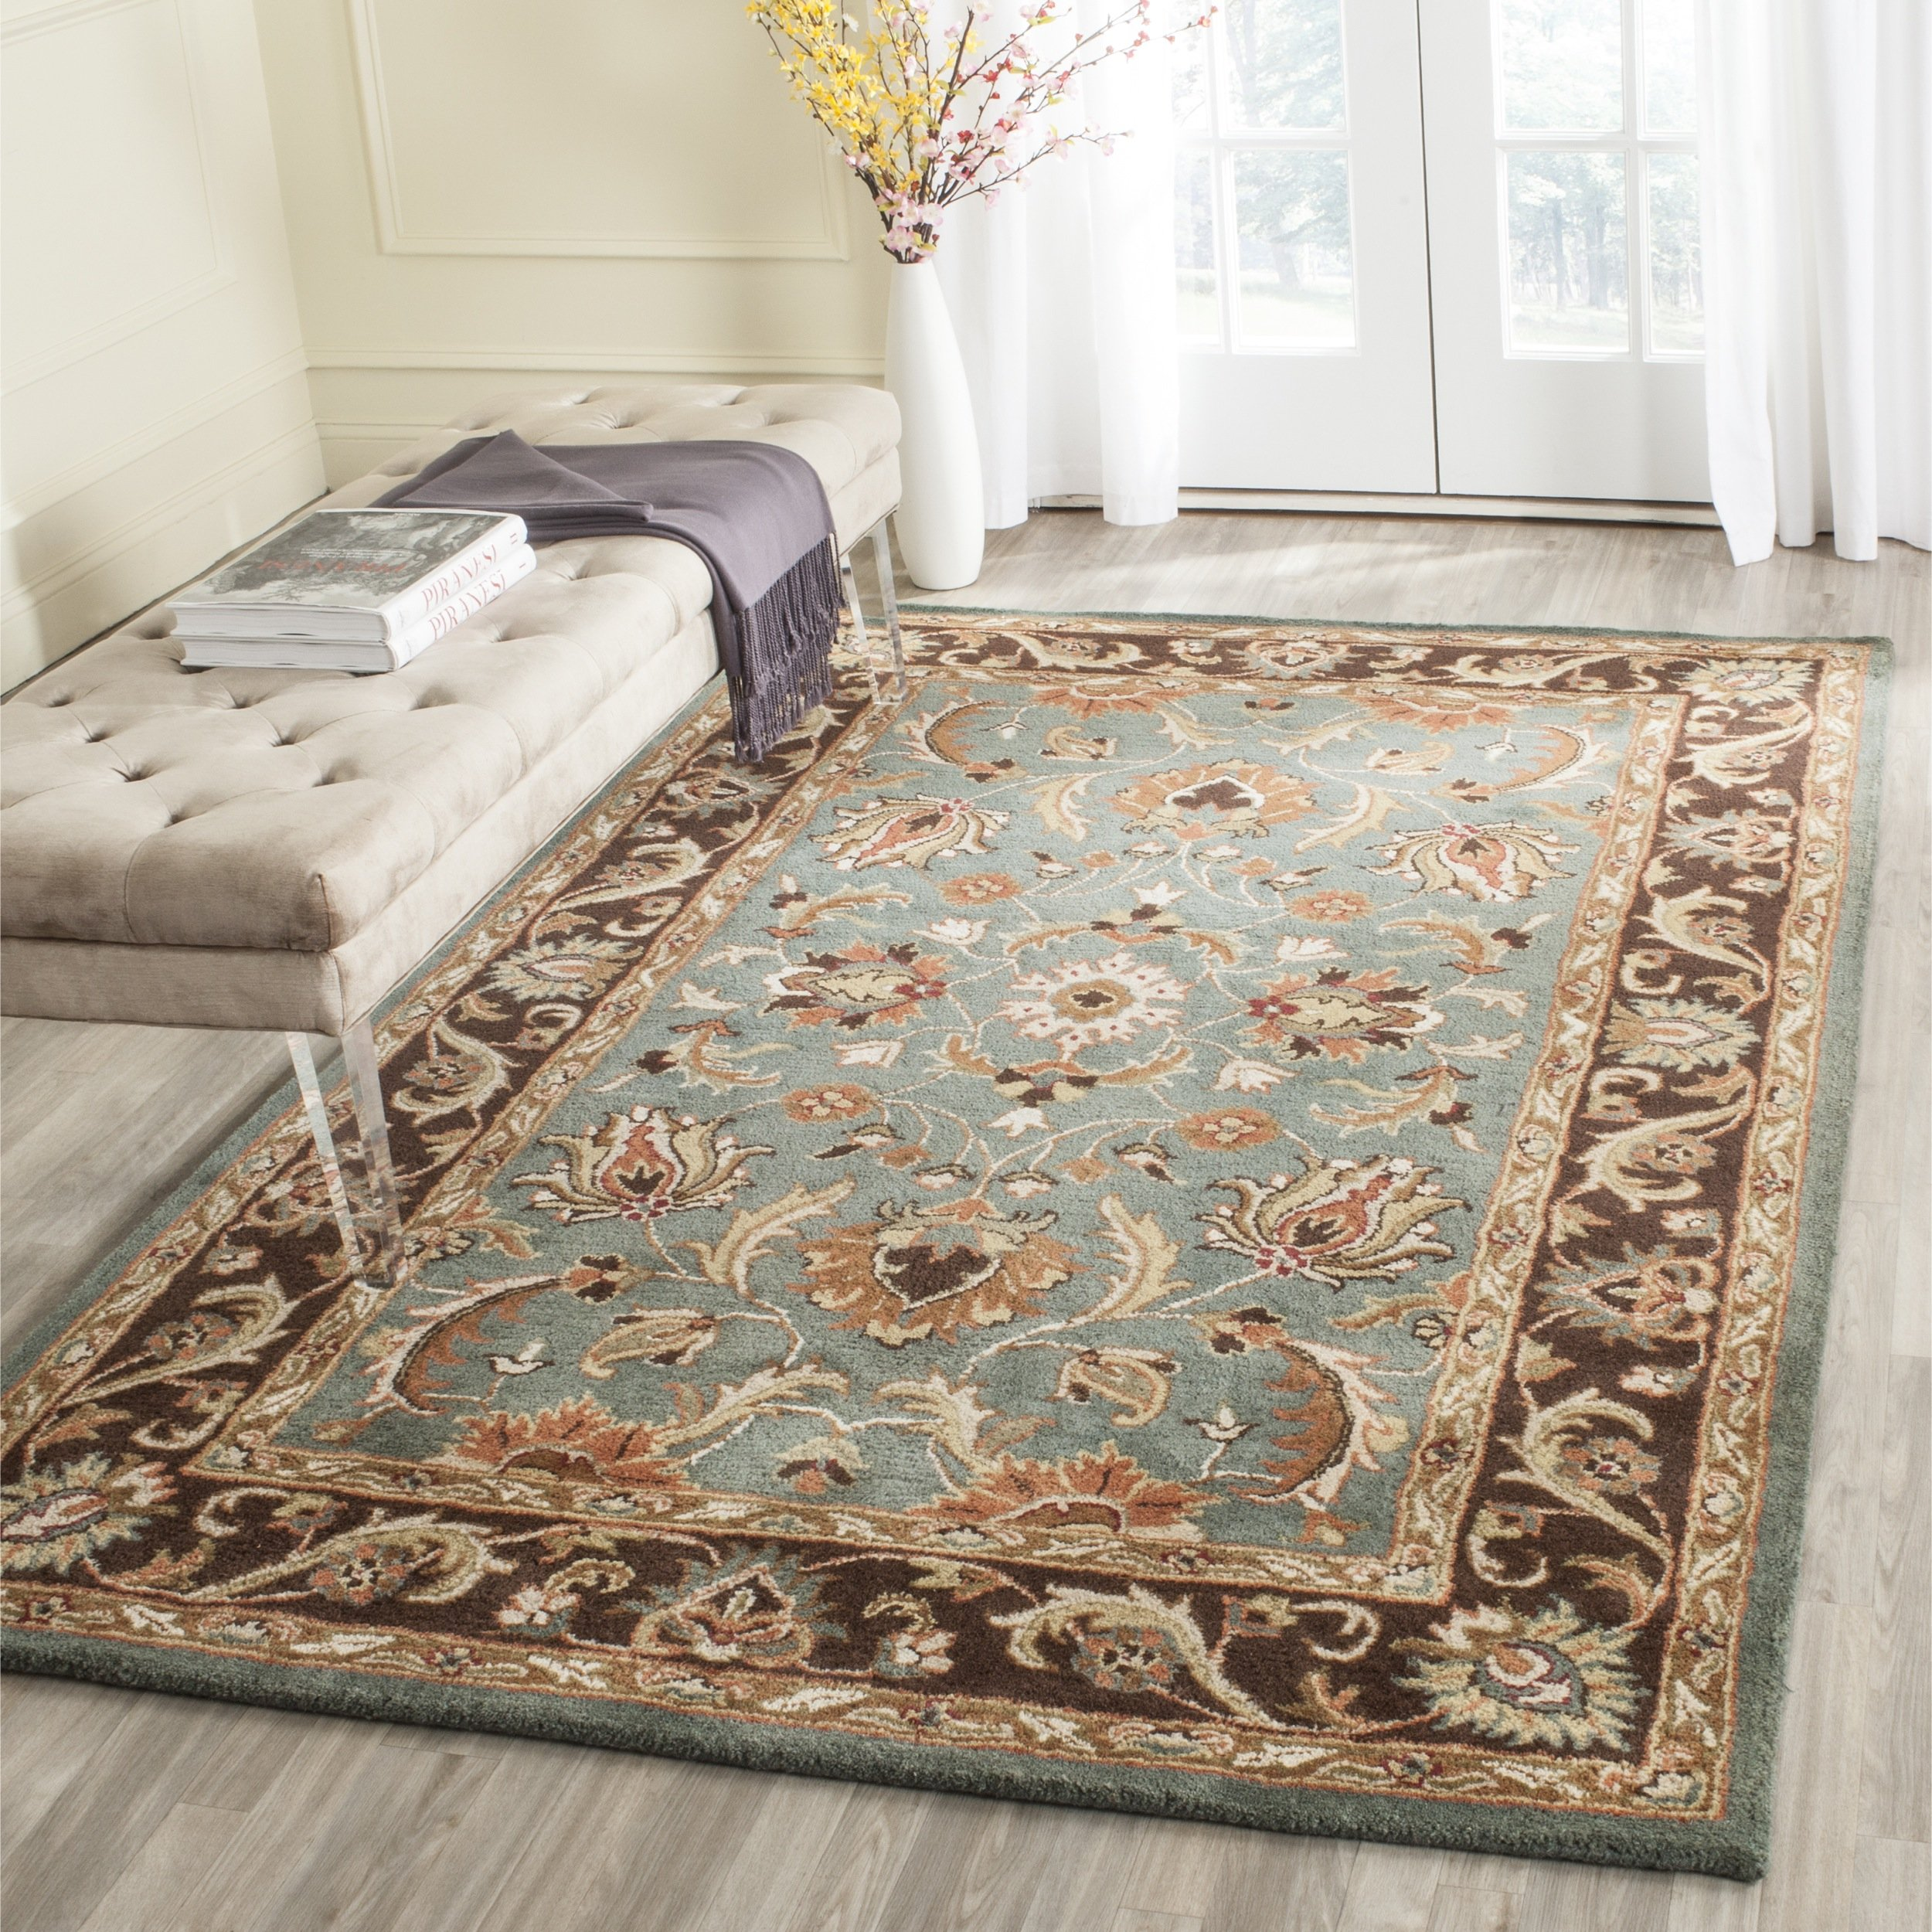 Safavieh Heritage Collection HG812B Handcrafted Traditional Oriental Blue and Brown Wool Area Rug (7'6'' x 9'6'')